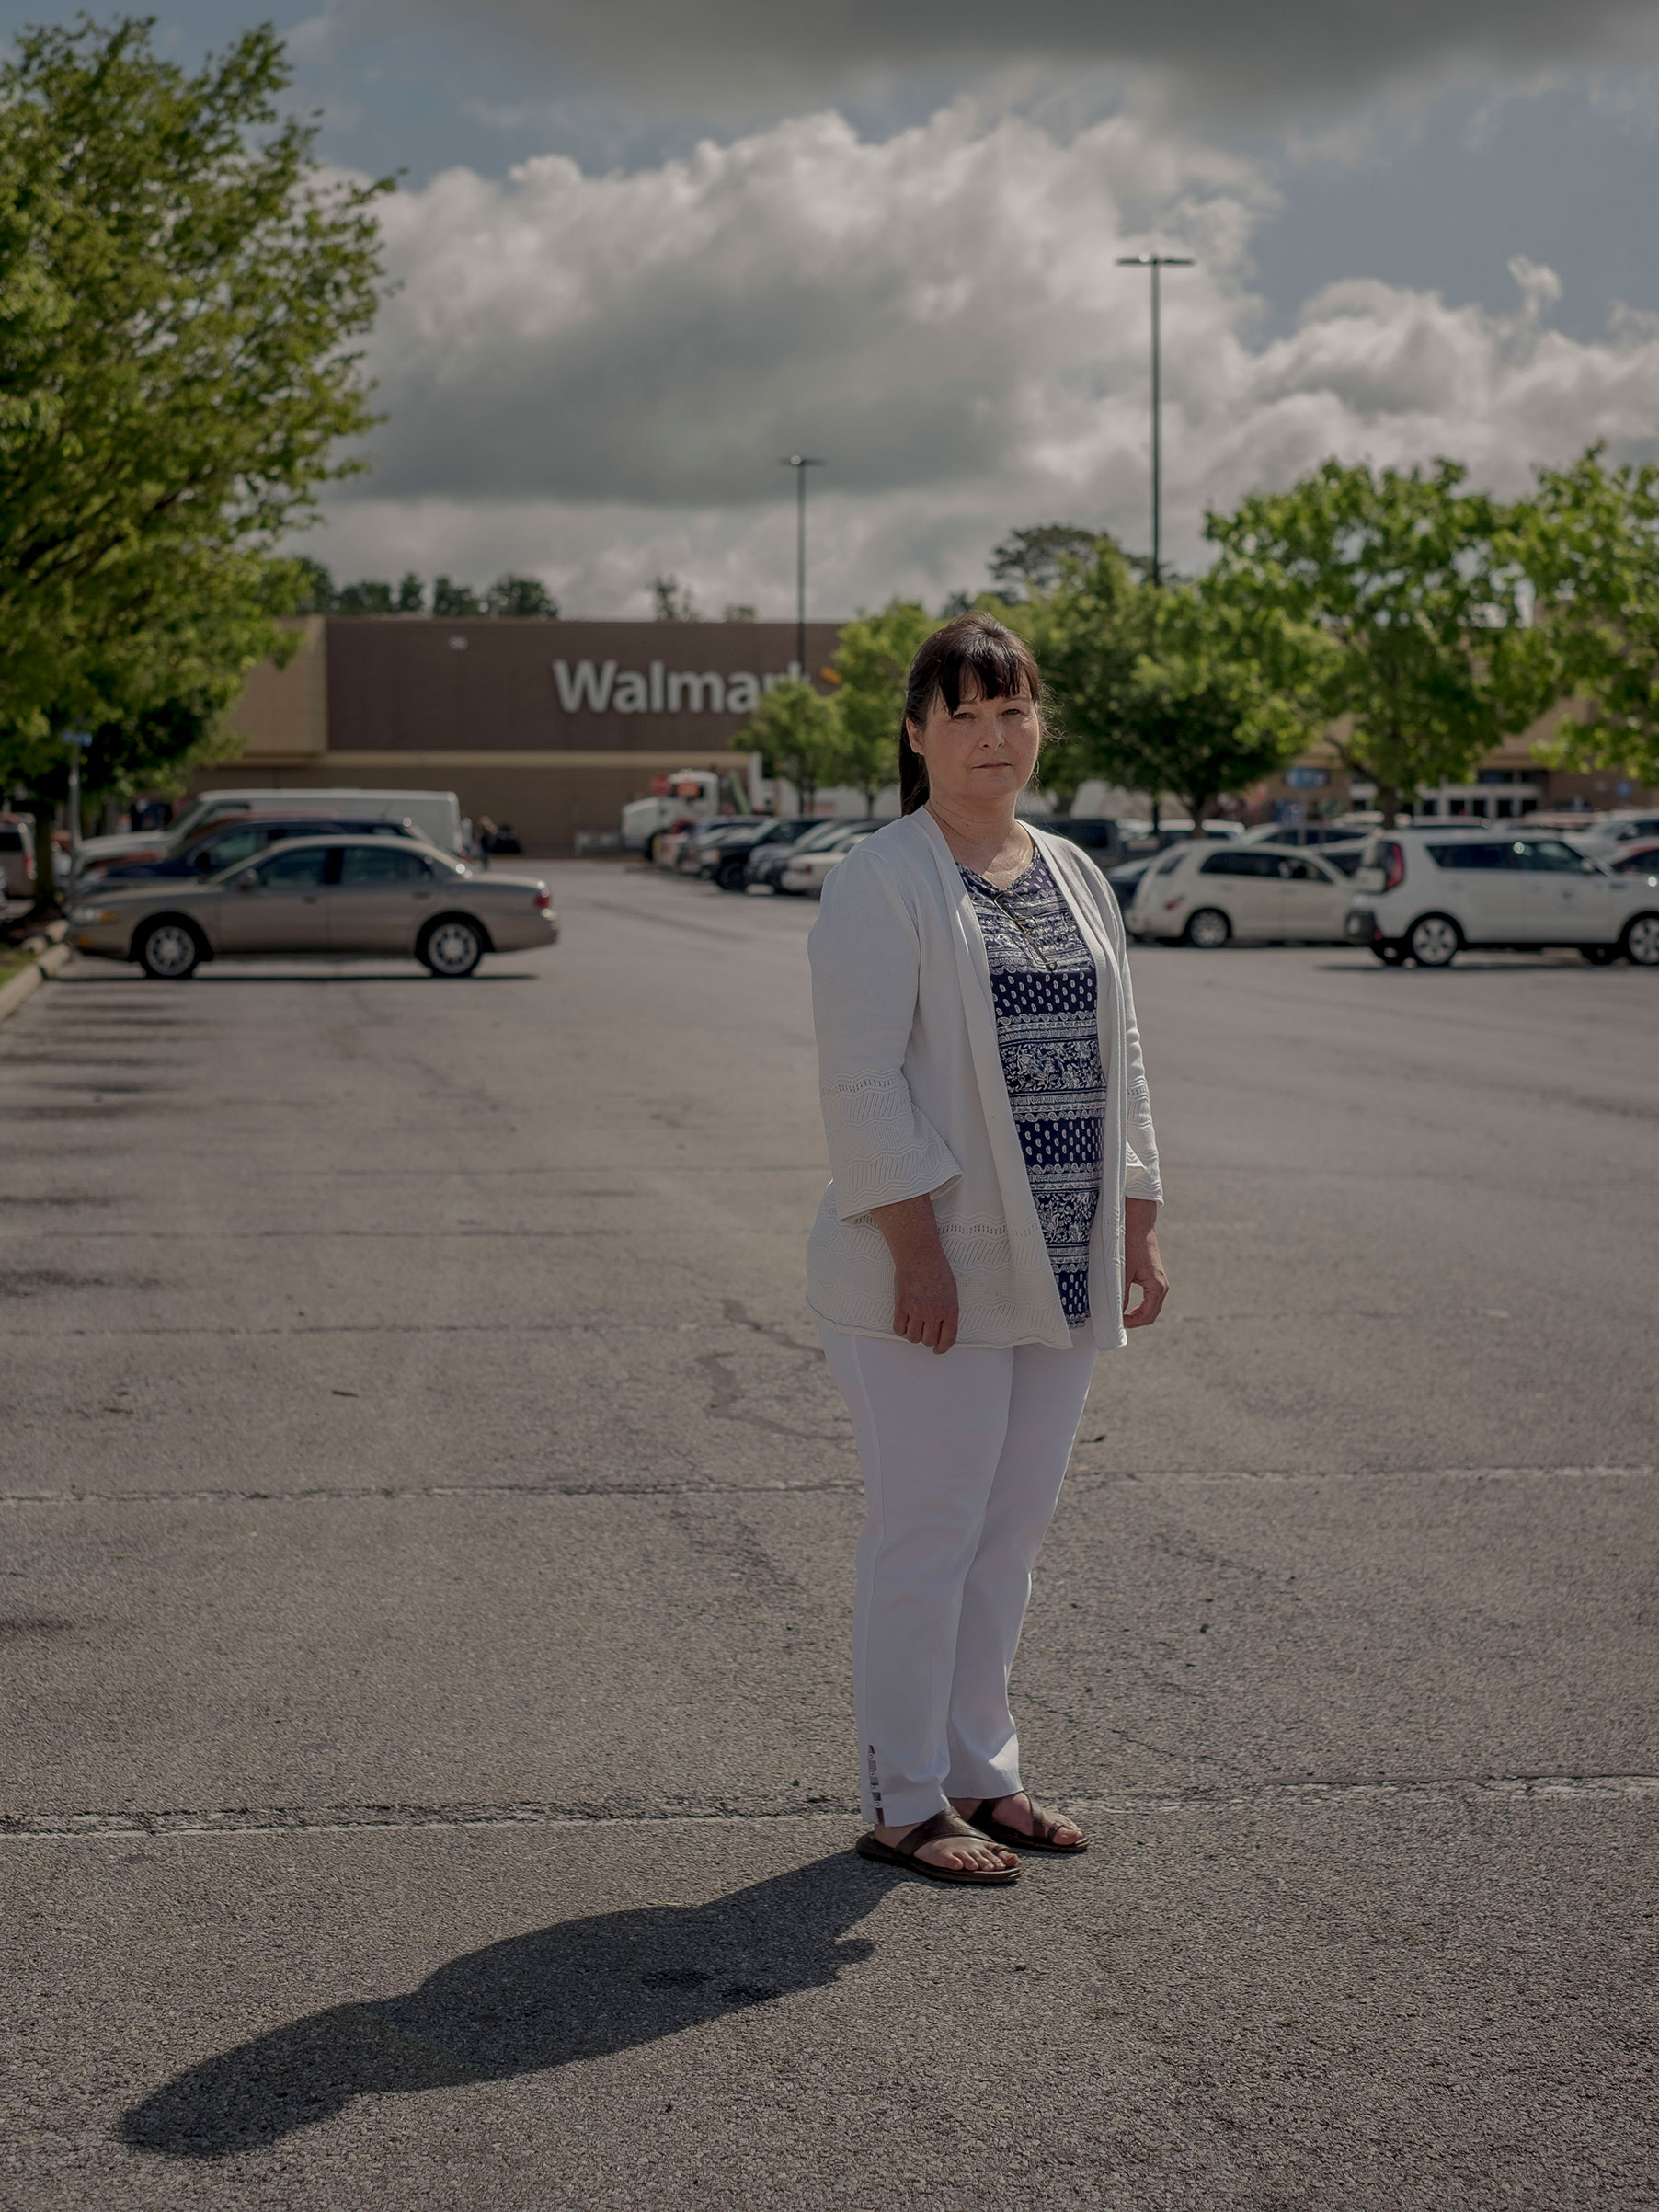 In a lawsuit filed against Walmart this month, Stephanie Chapman alleges that she was paid less than men in similar positions